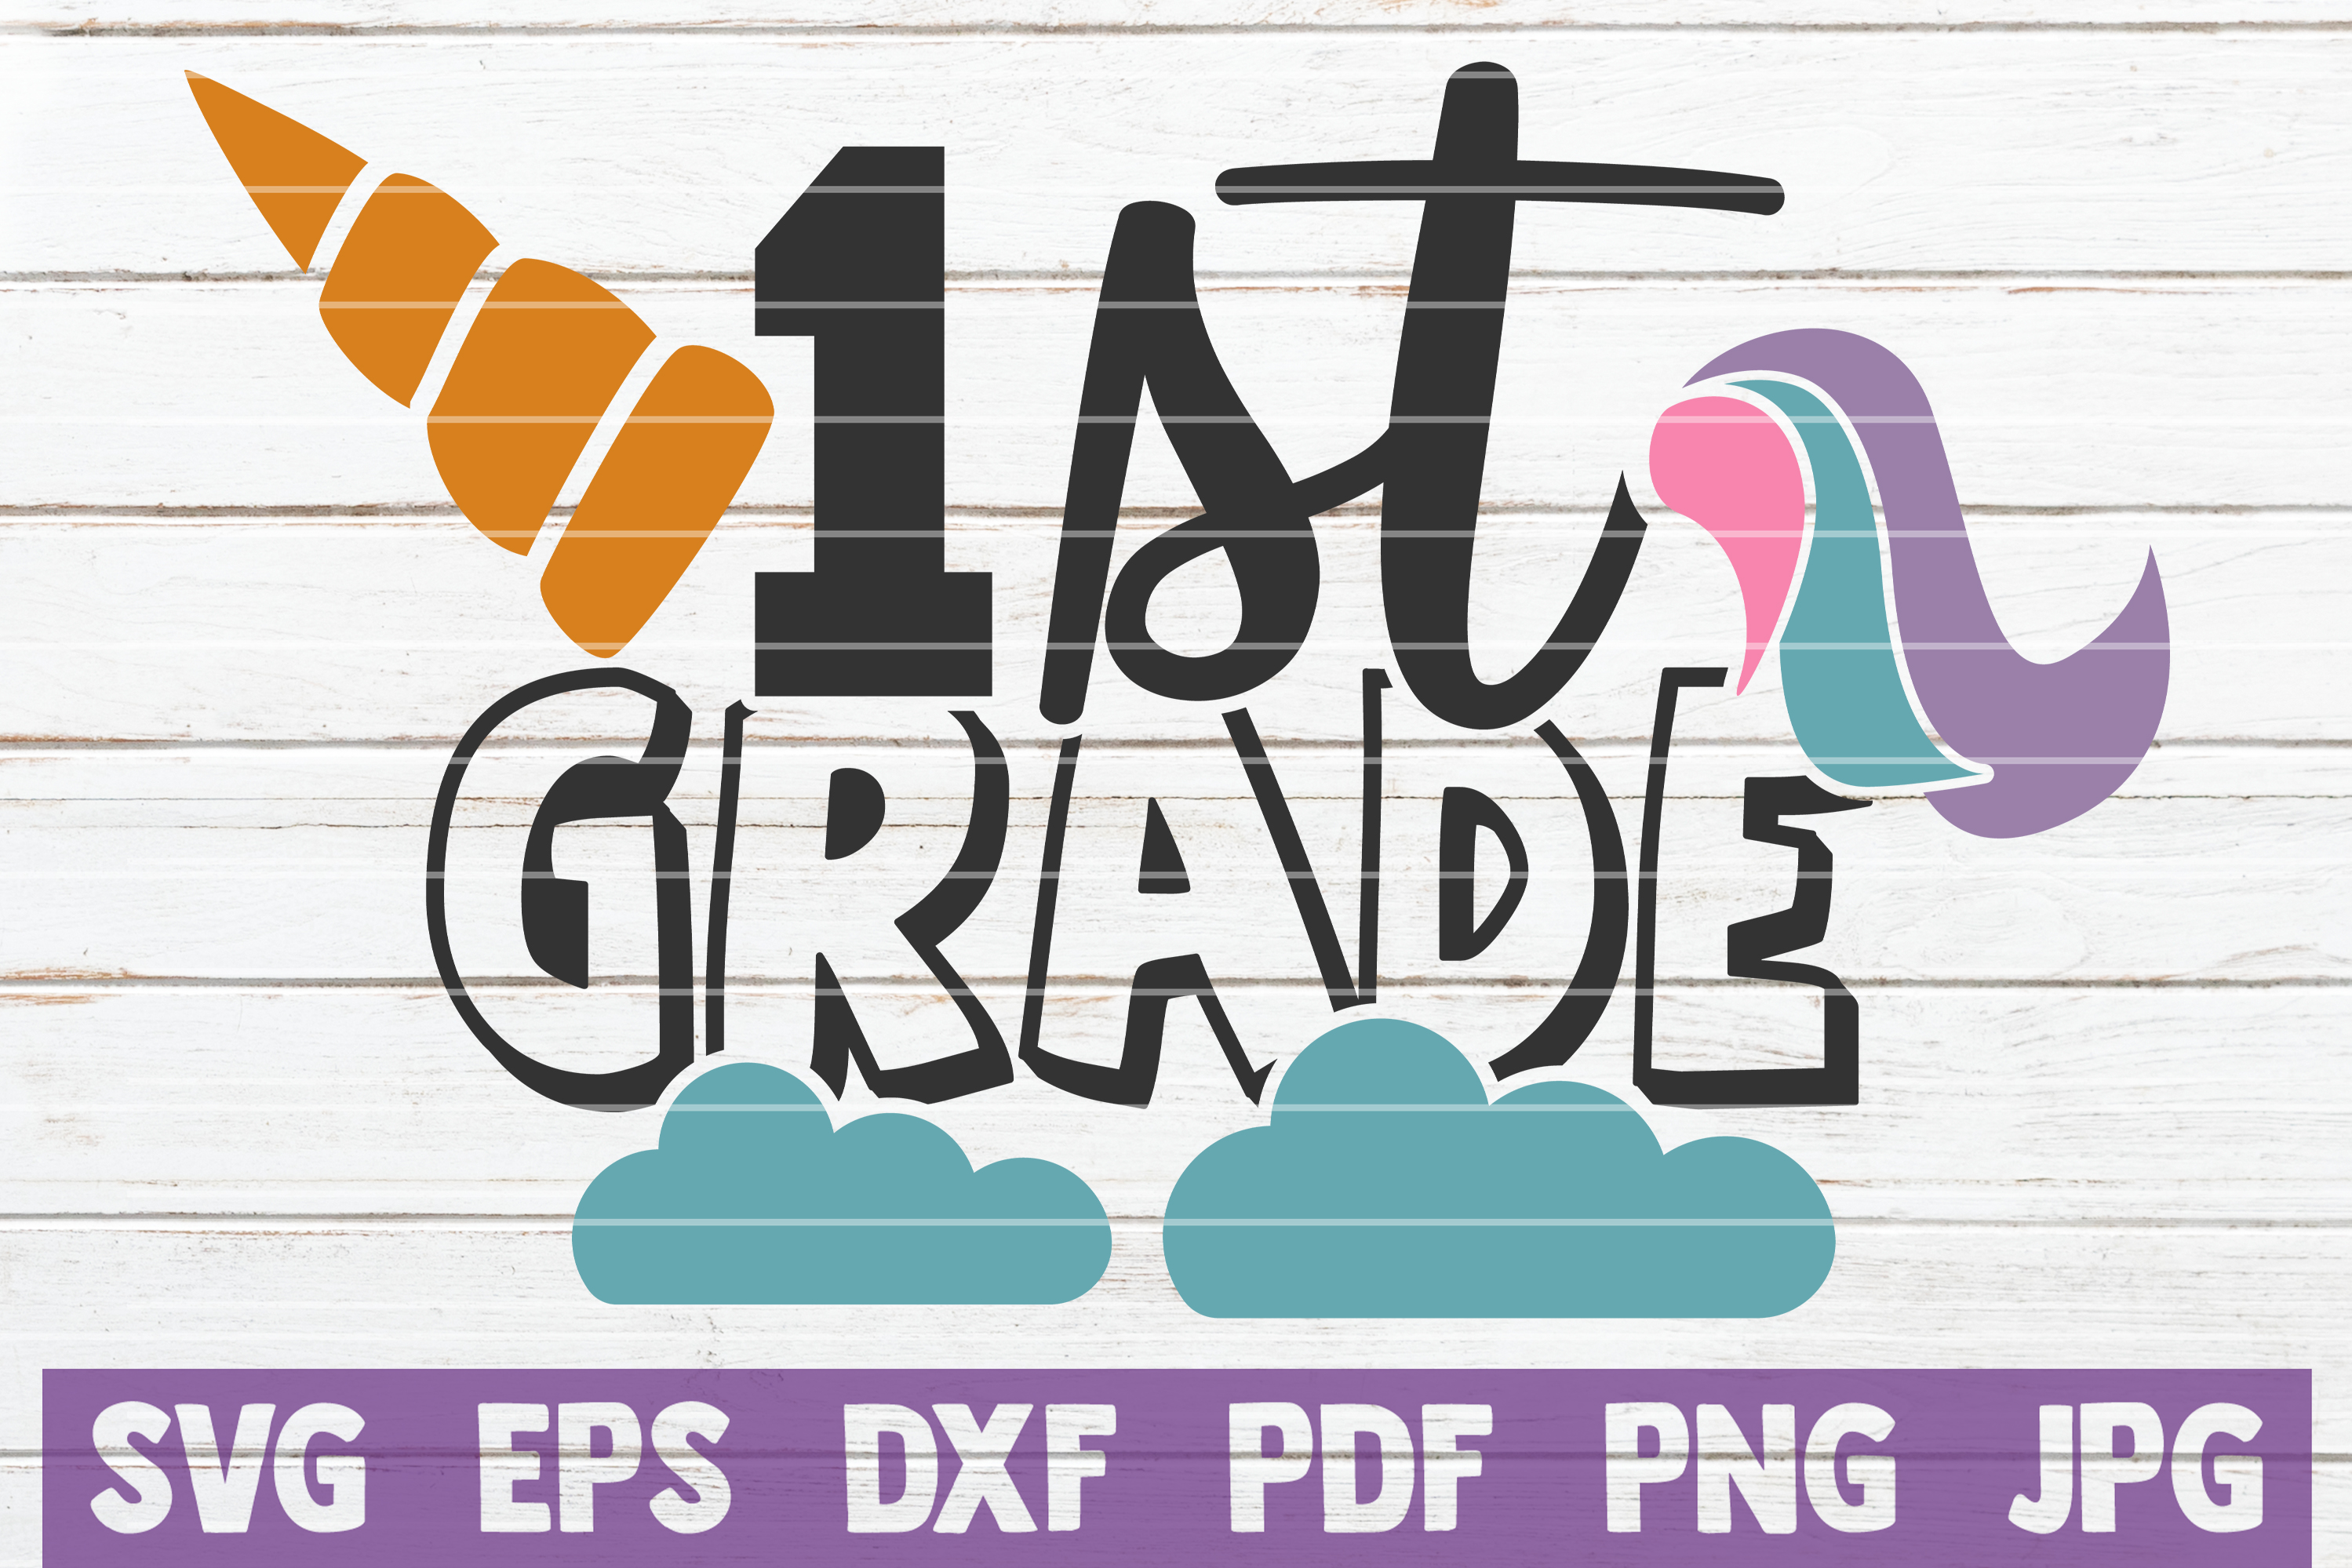 Download Free 1st Grade Unicorn Graphic By Mintymarshmallows Creative Fabrica for Cricut Explore, Silhouette and other cutting machines.